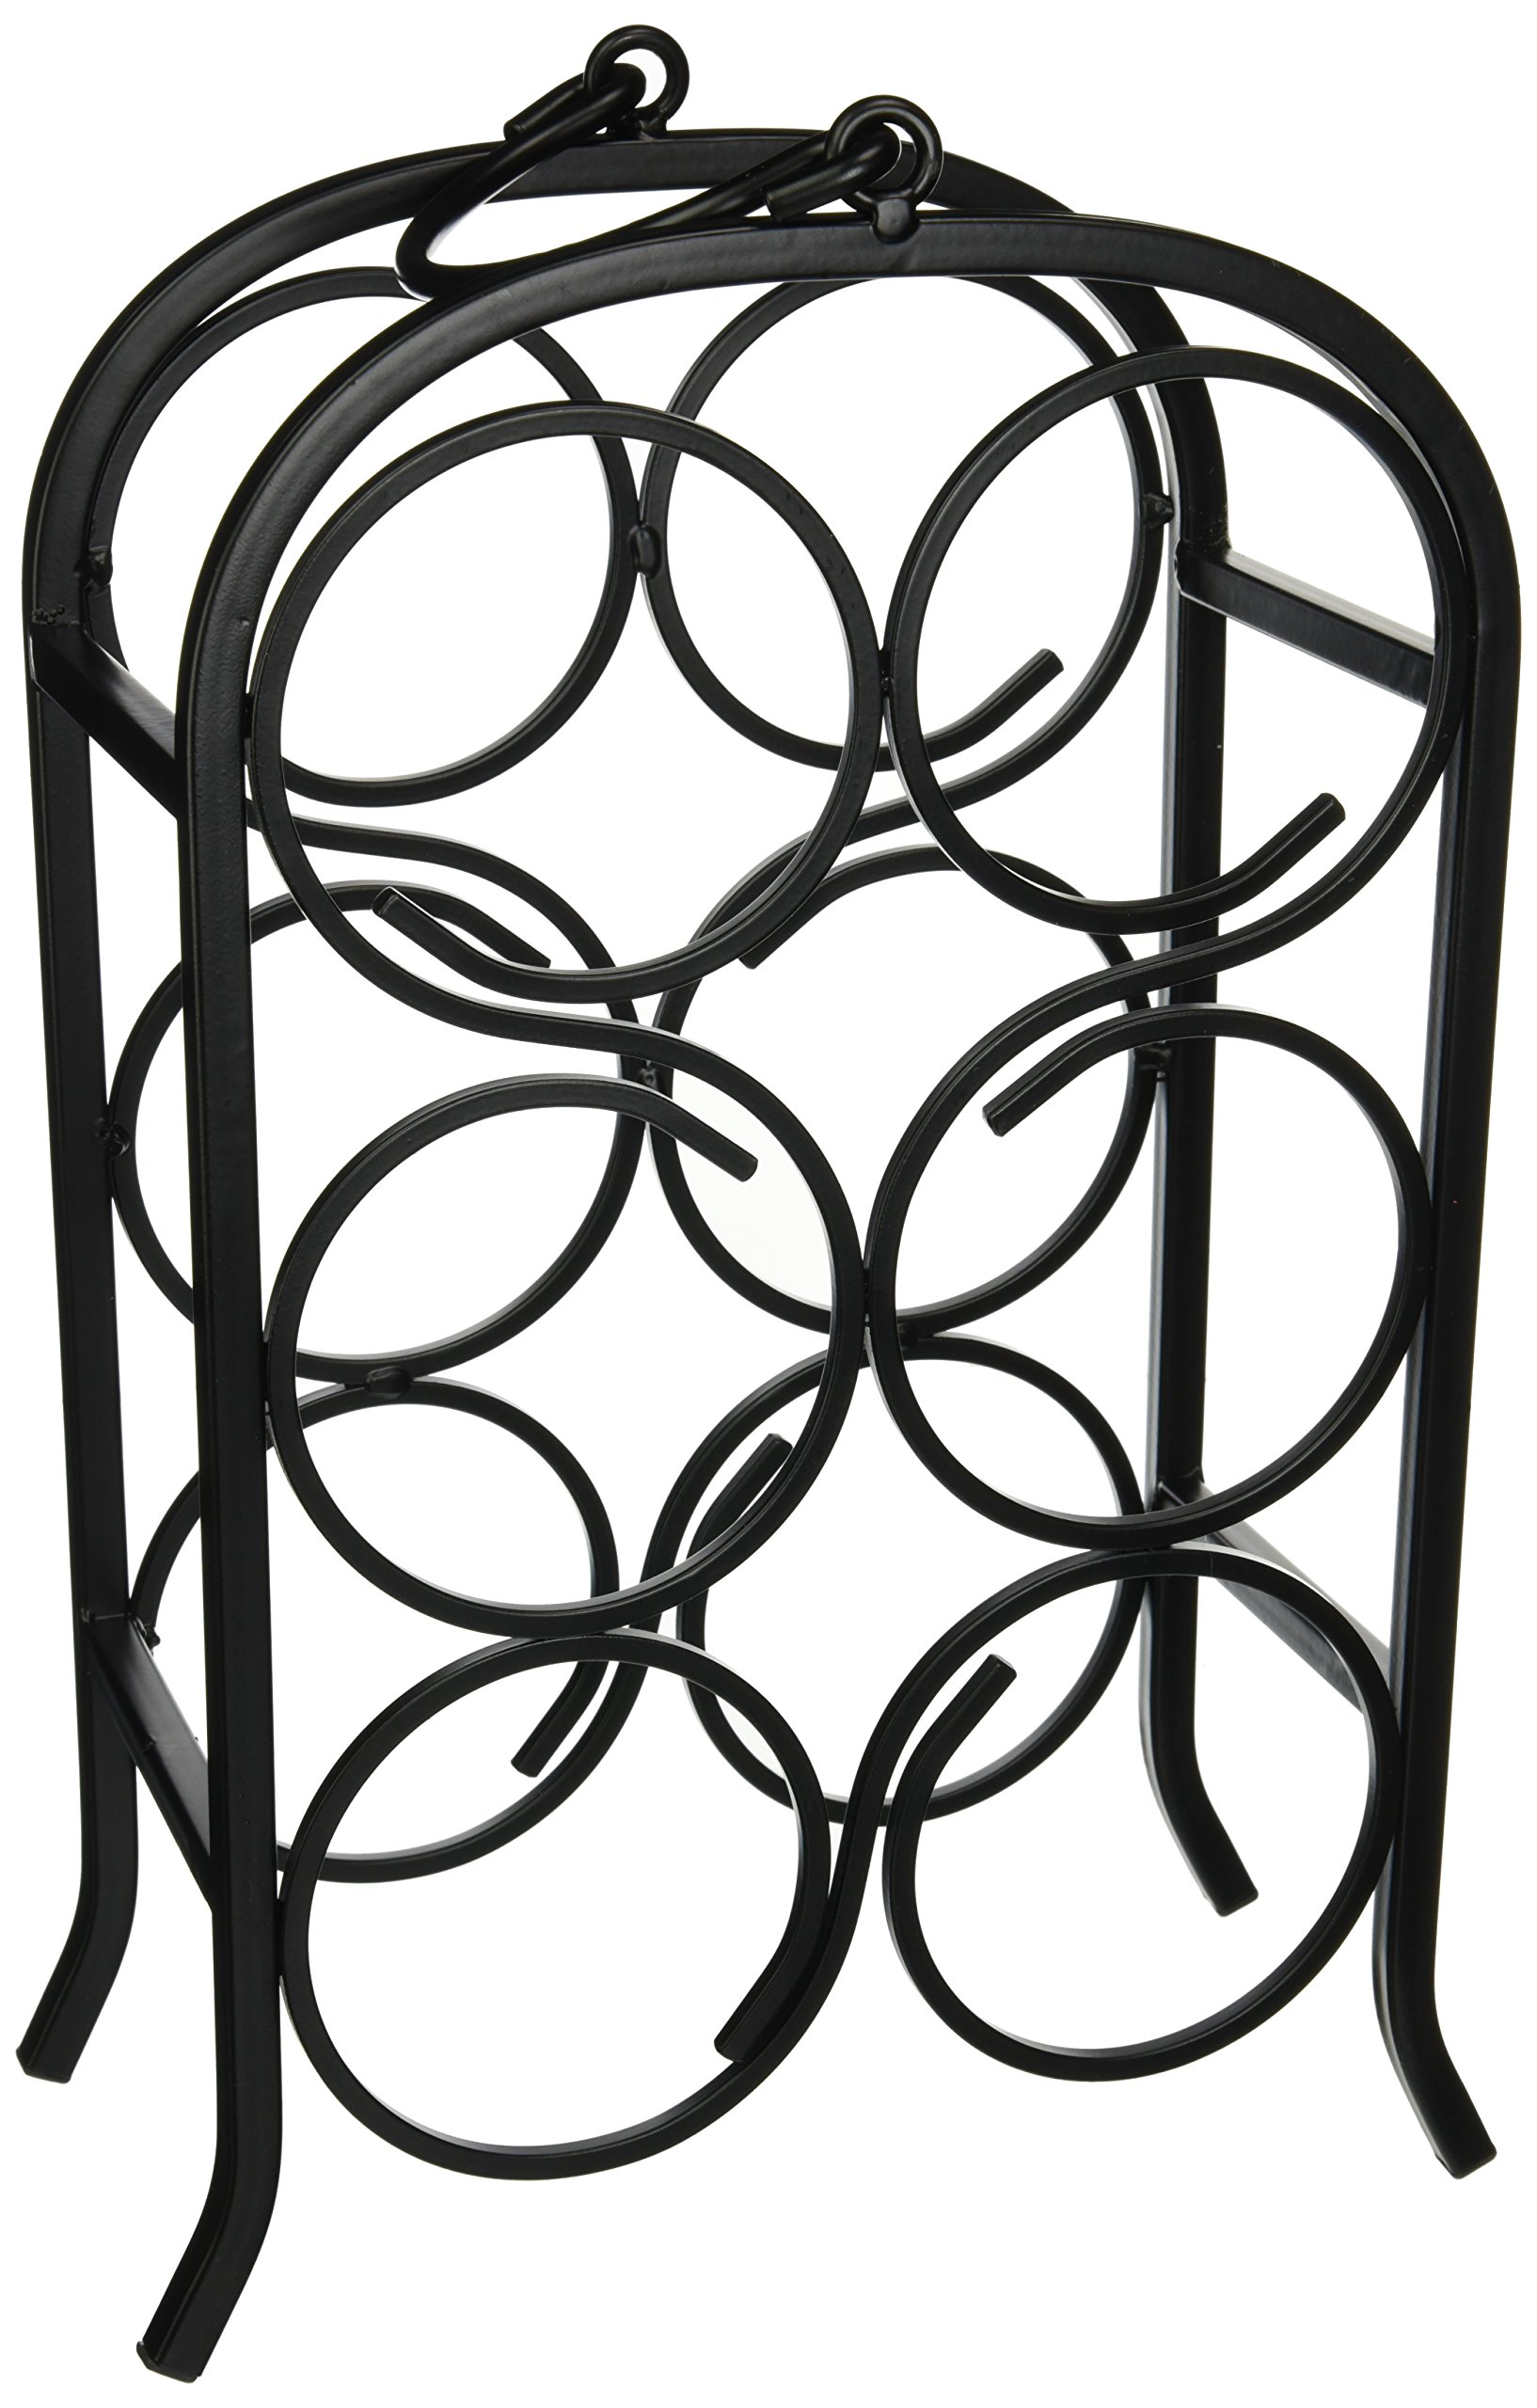 Oenophilia Wine Arch Wine Rack, Free Standing Wine Holder Rack, Countertop, Bar, Wine Cellar, 6 Bottle